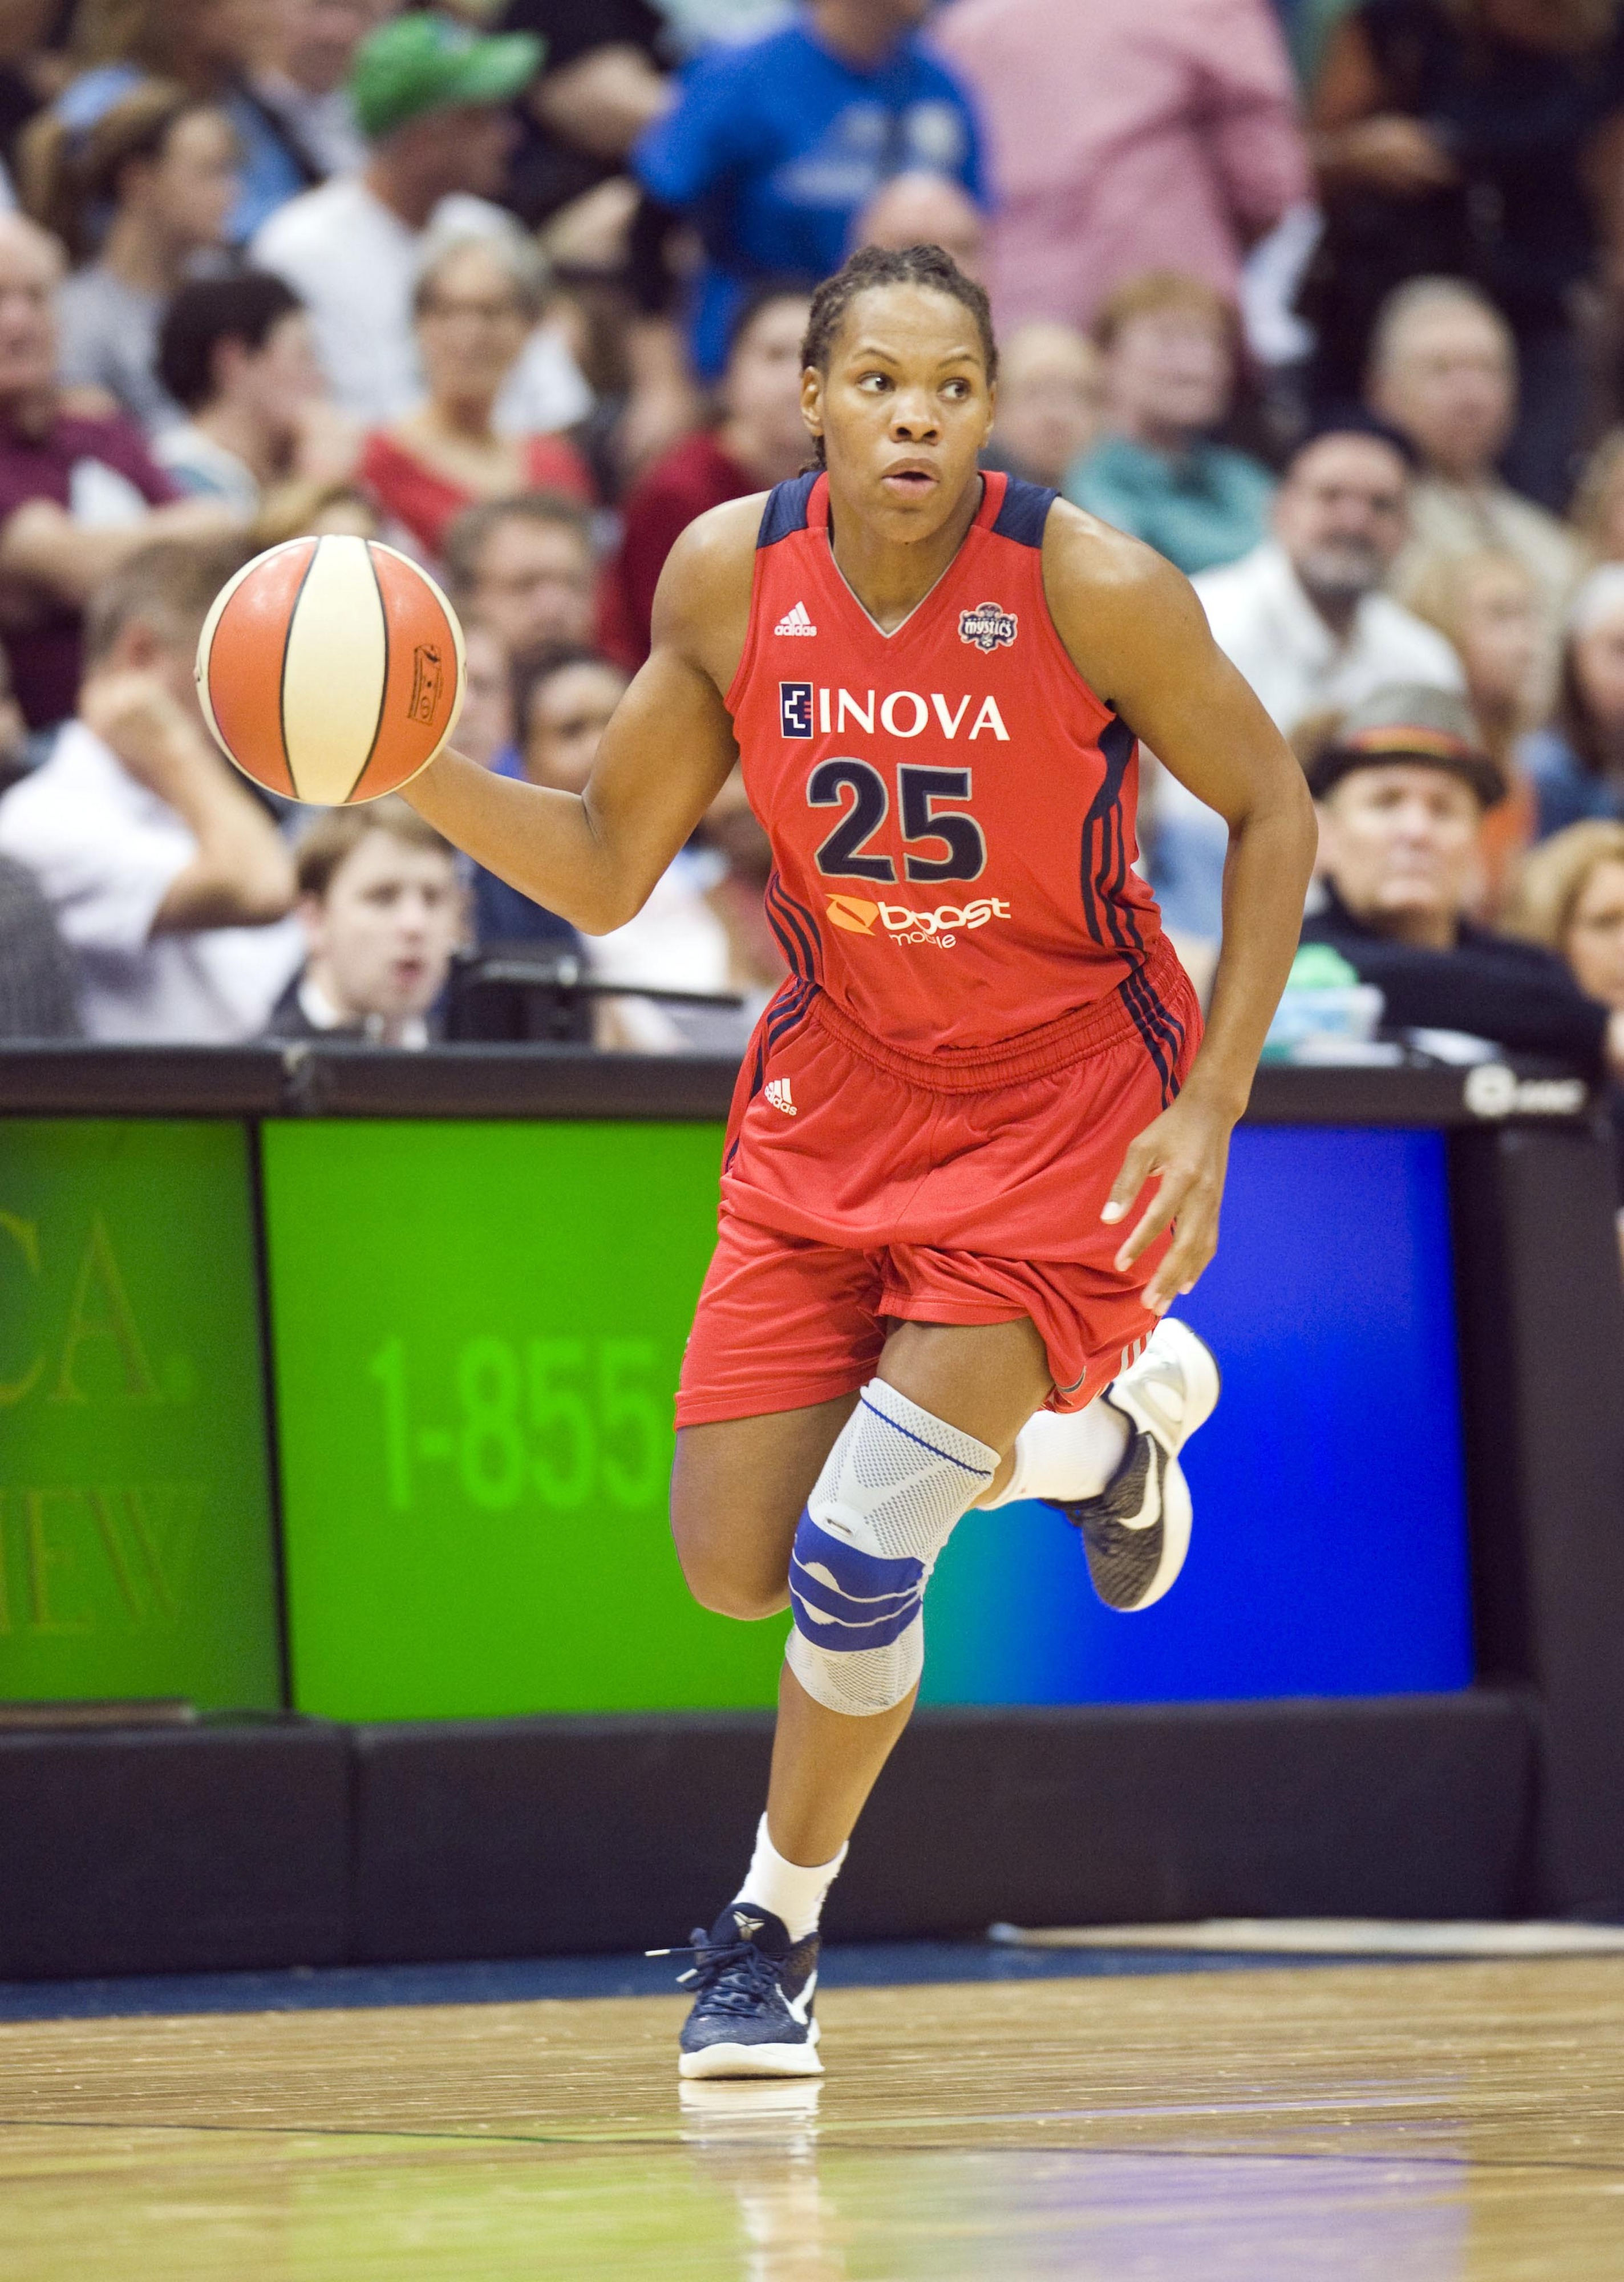 One Mystics fan besides me believes that Monique Currie should be available for a deal if it presents itself this season.